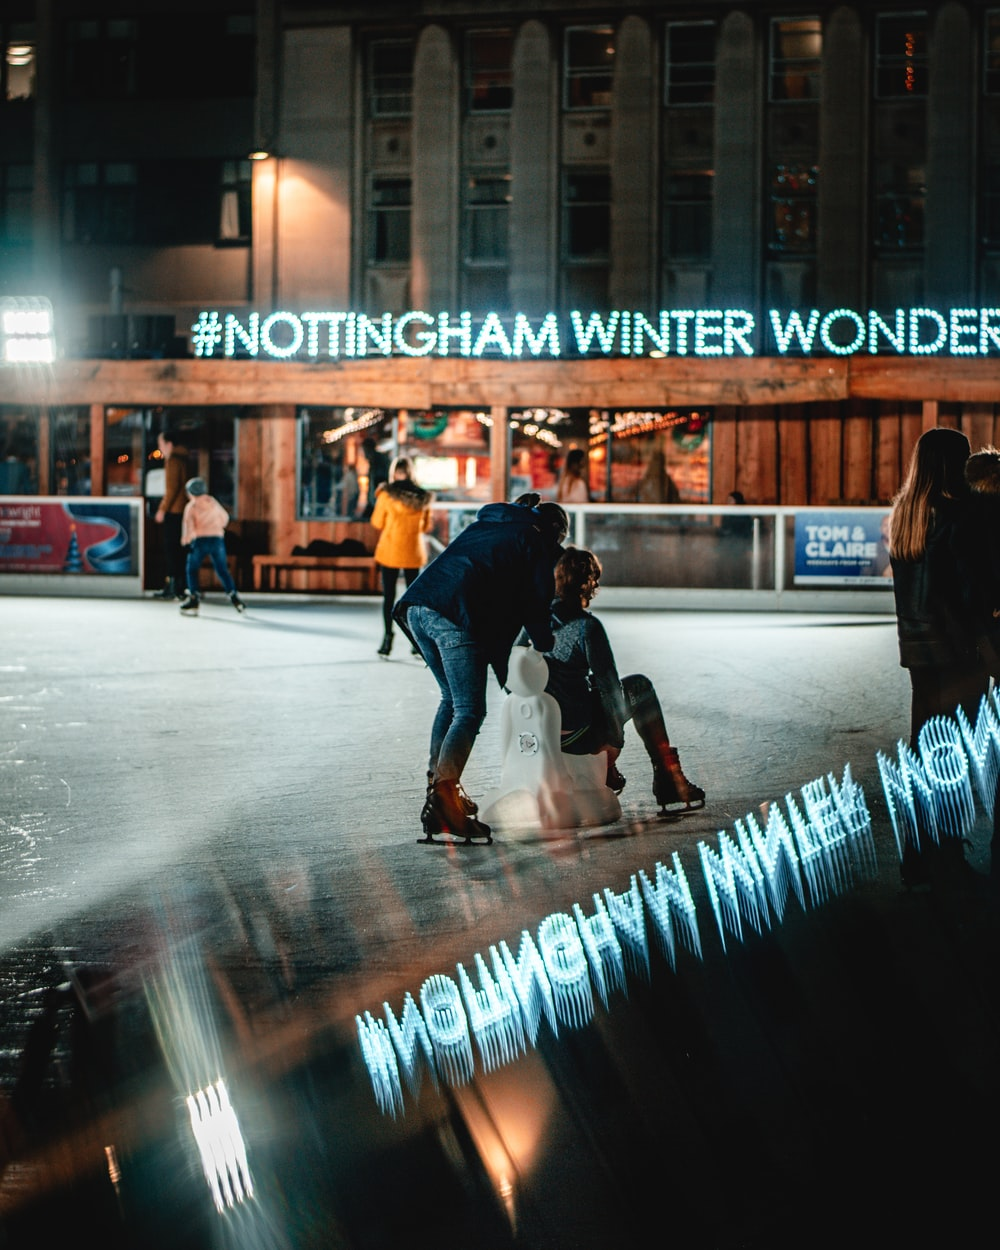 person sitting on white chair and another person standing viewing Nottingham Winter Wonderland building during night time